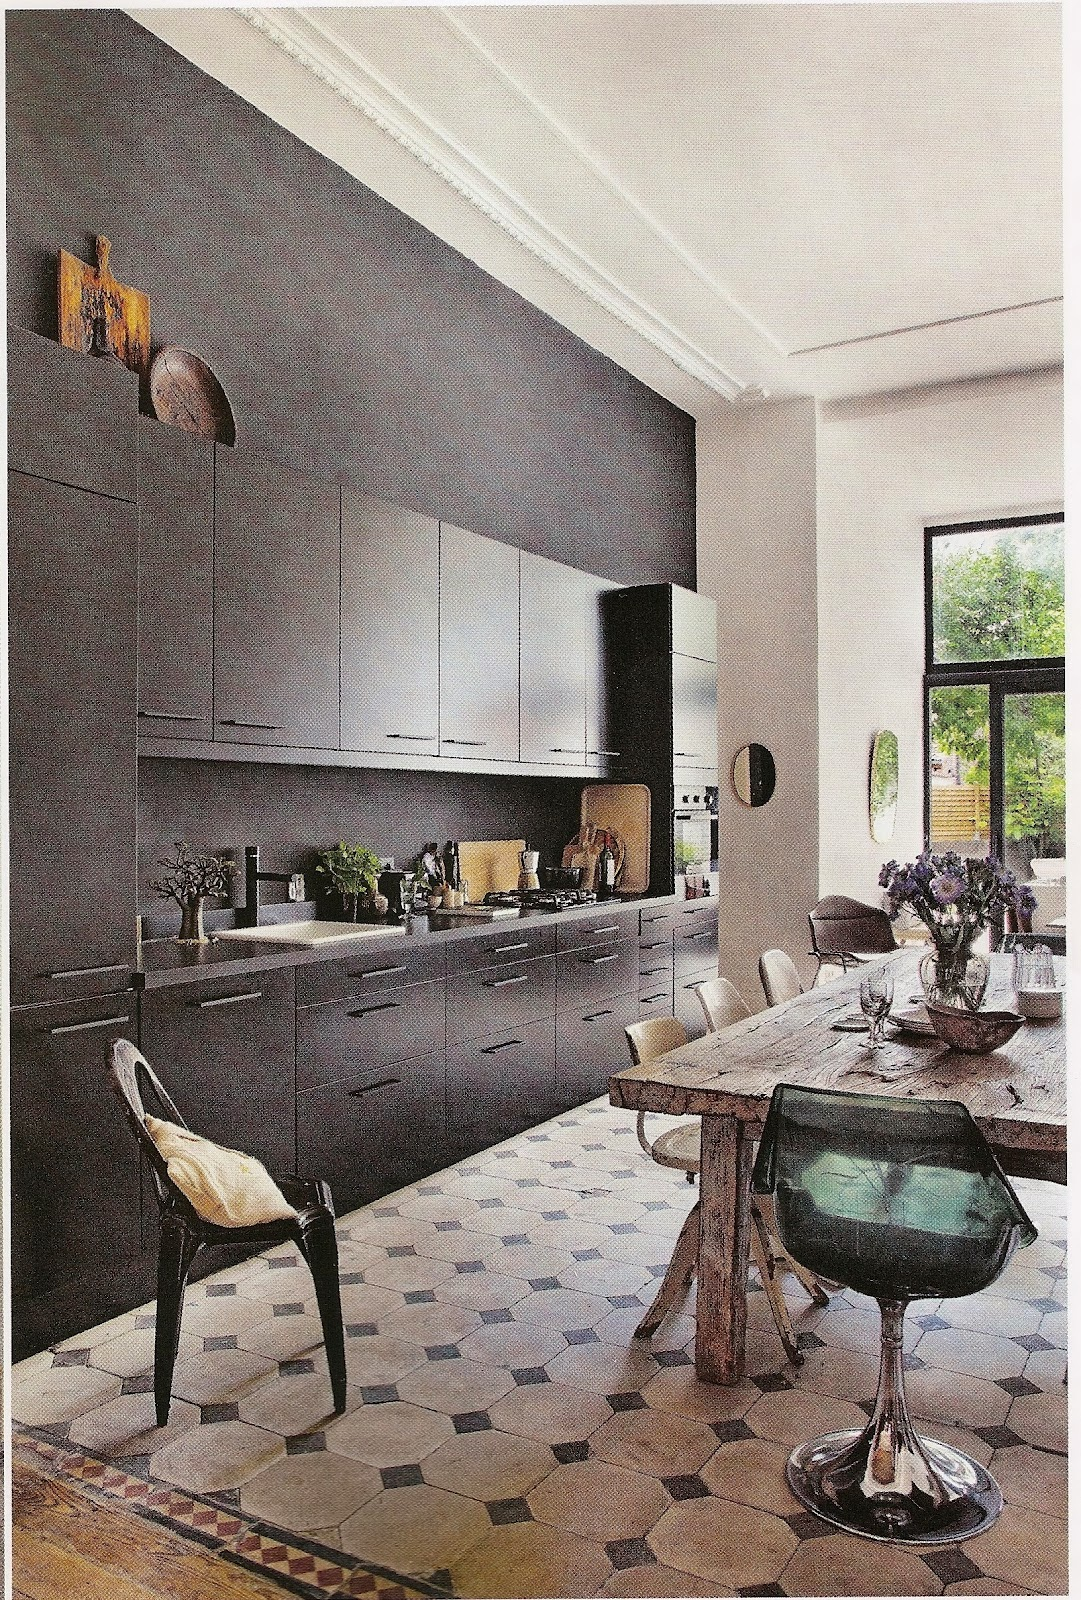 Decor Inspiration A Kitchen To Live In: Seeking Inspiration: Kitchens